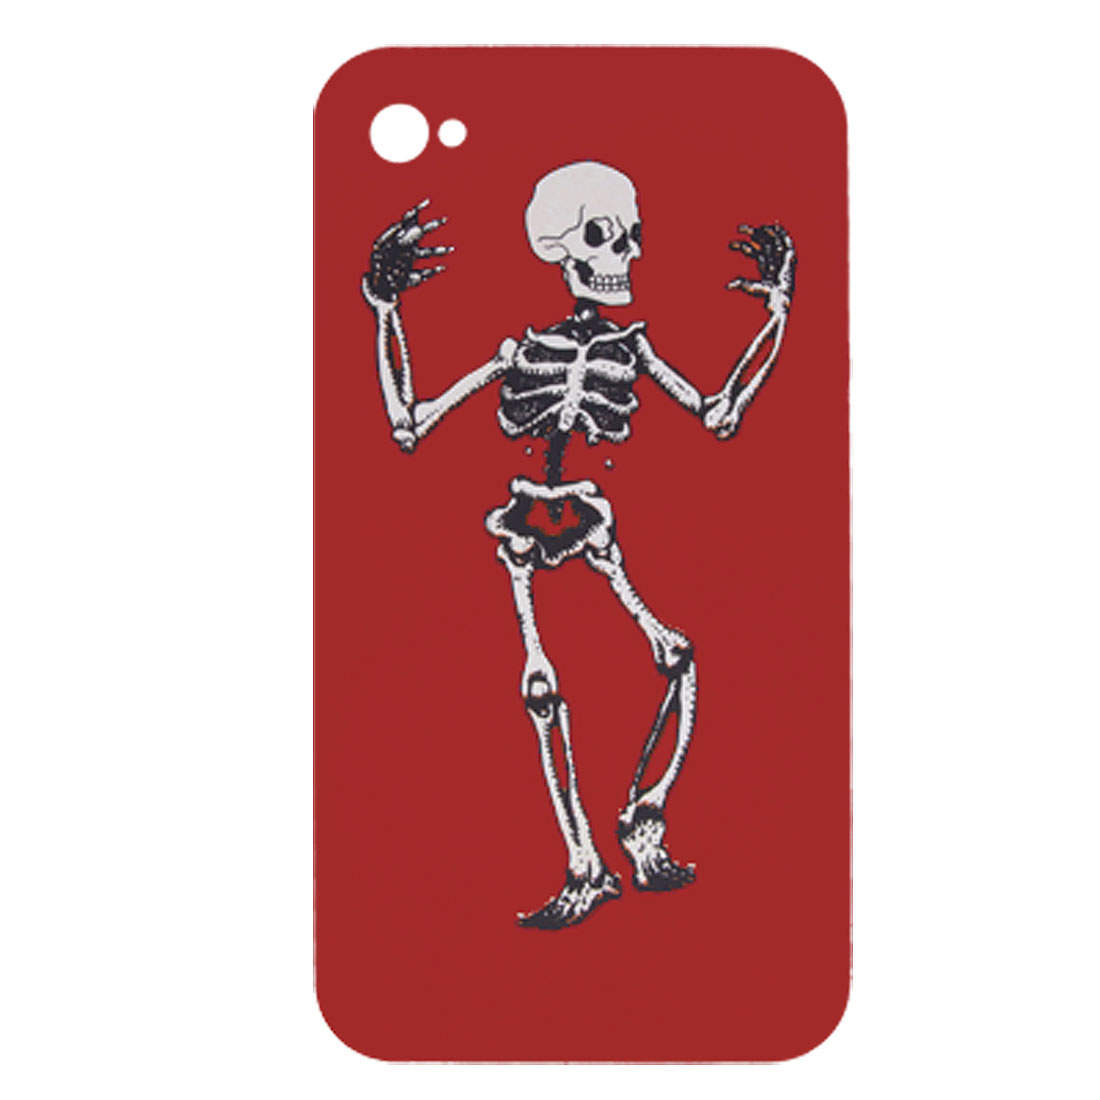 Rubberized Hard Plastic Skeleton Red Case + Stylus Pen for iPhone 4 4G